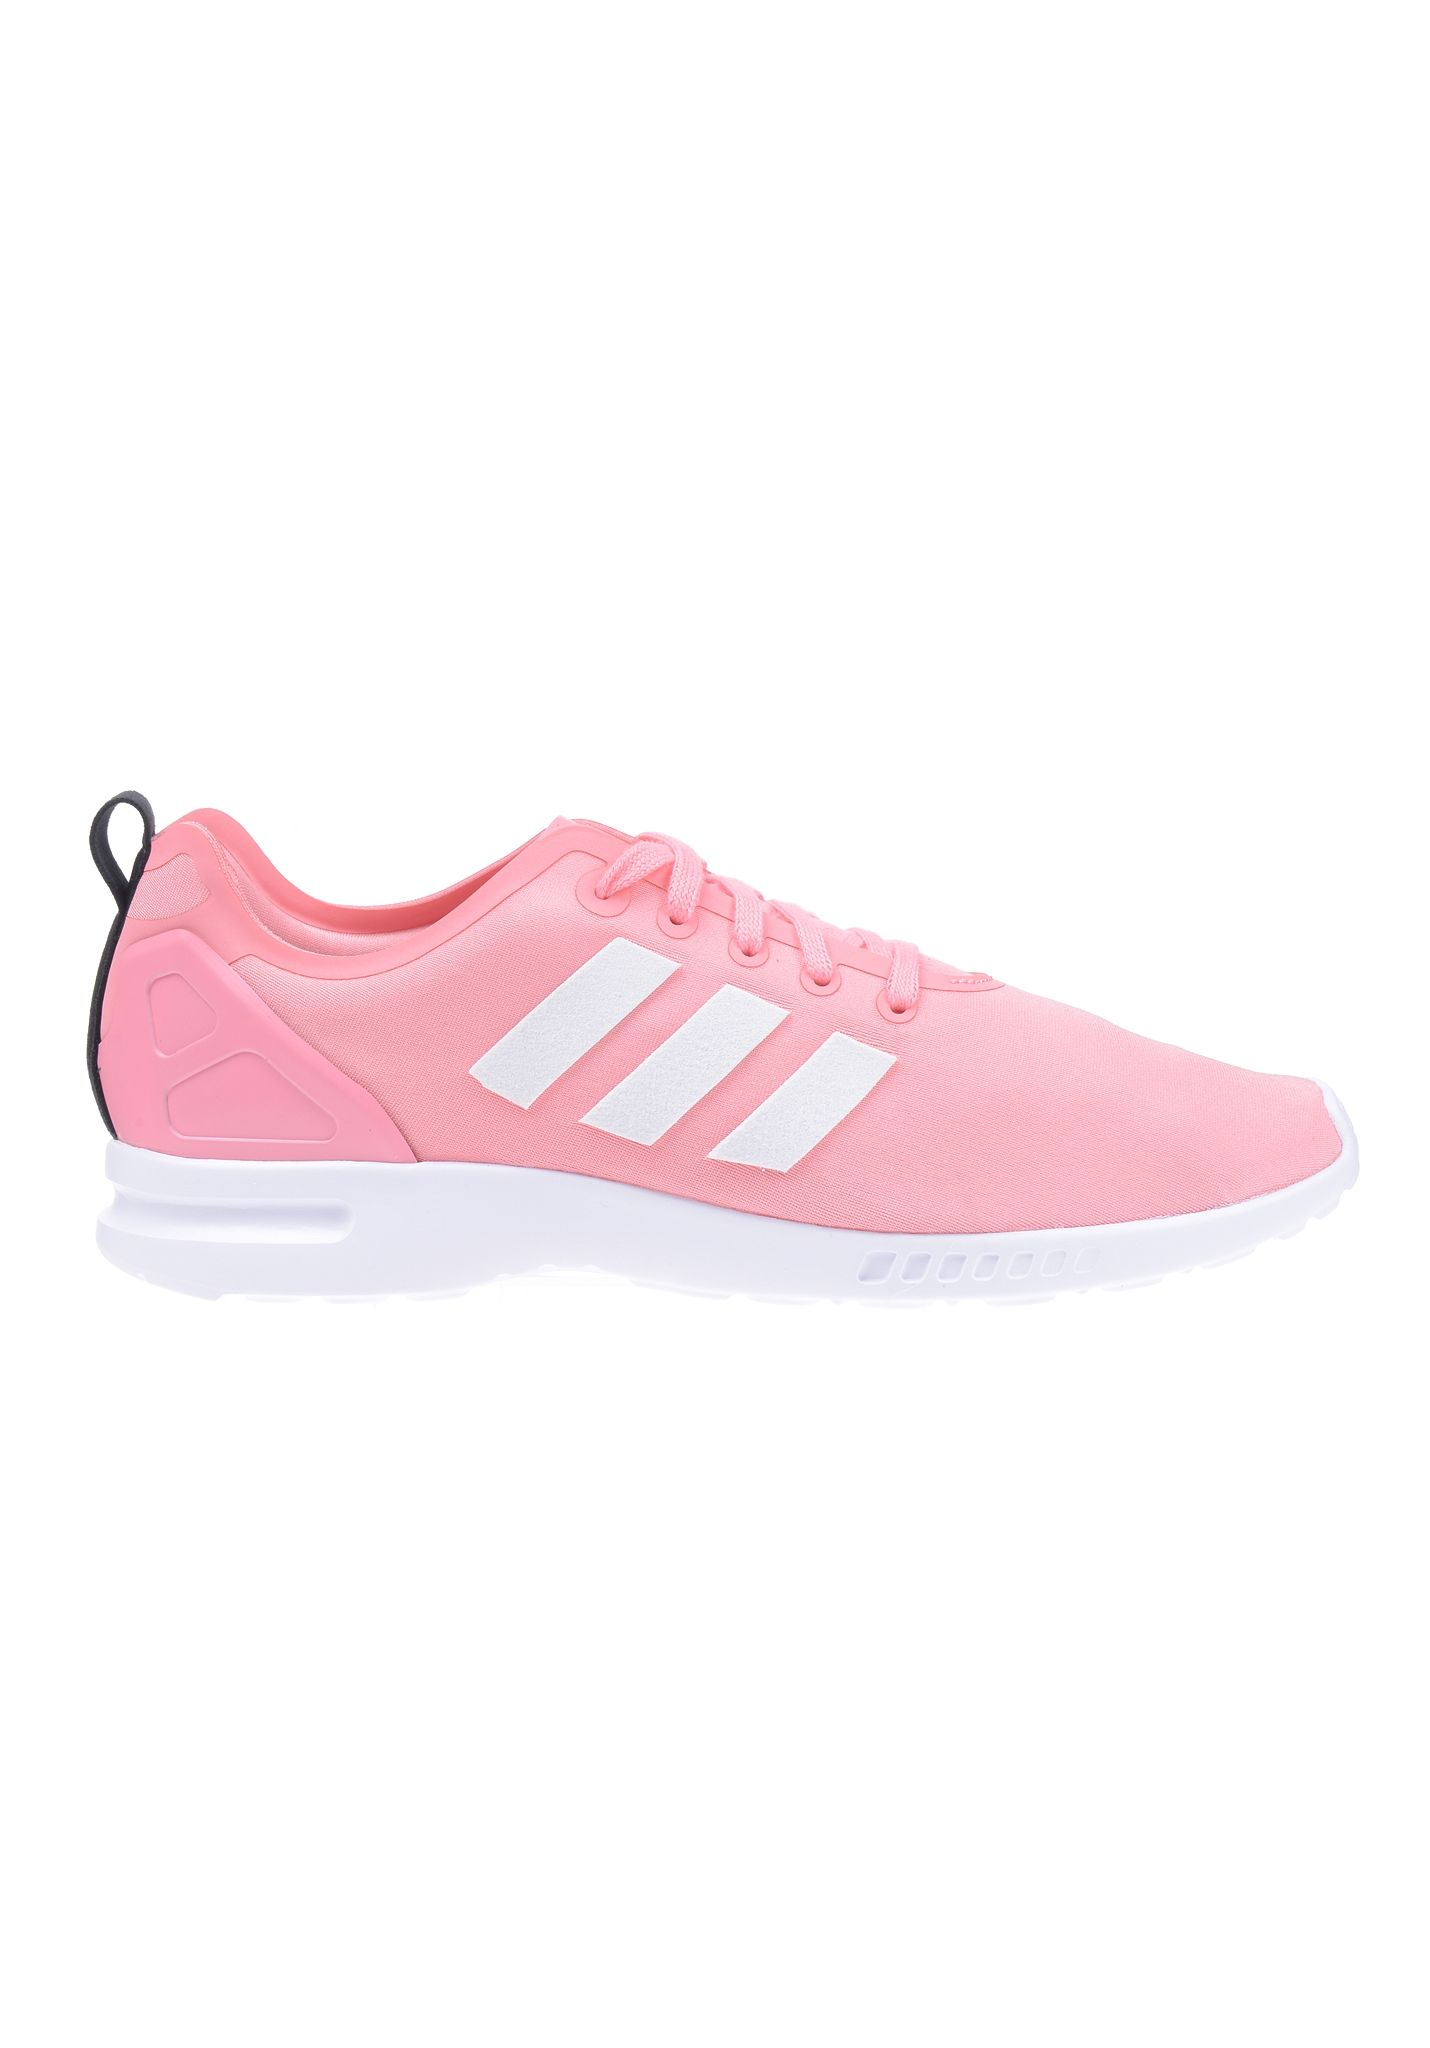 new product 59630 c1cd9 adidas zx flux smooth damen sneakers